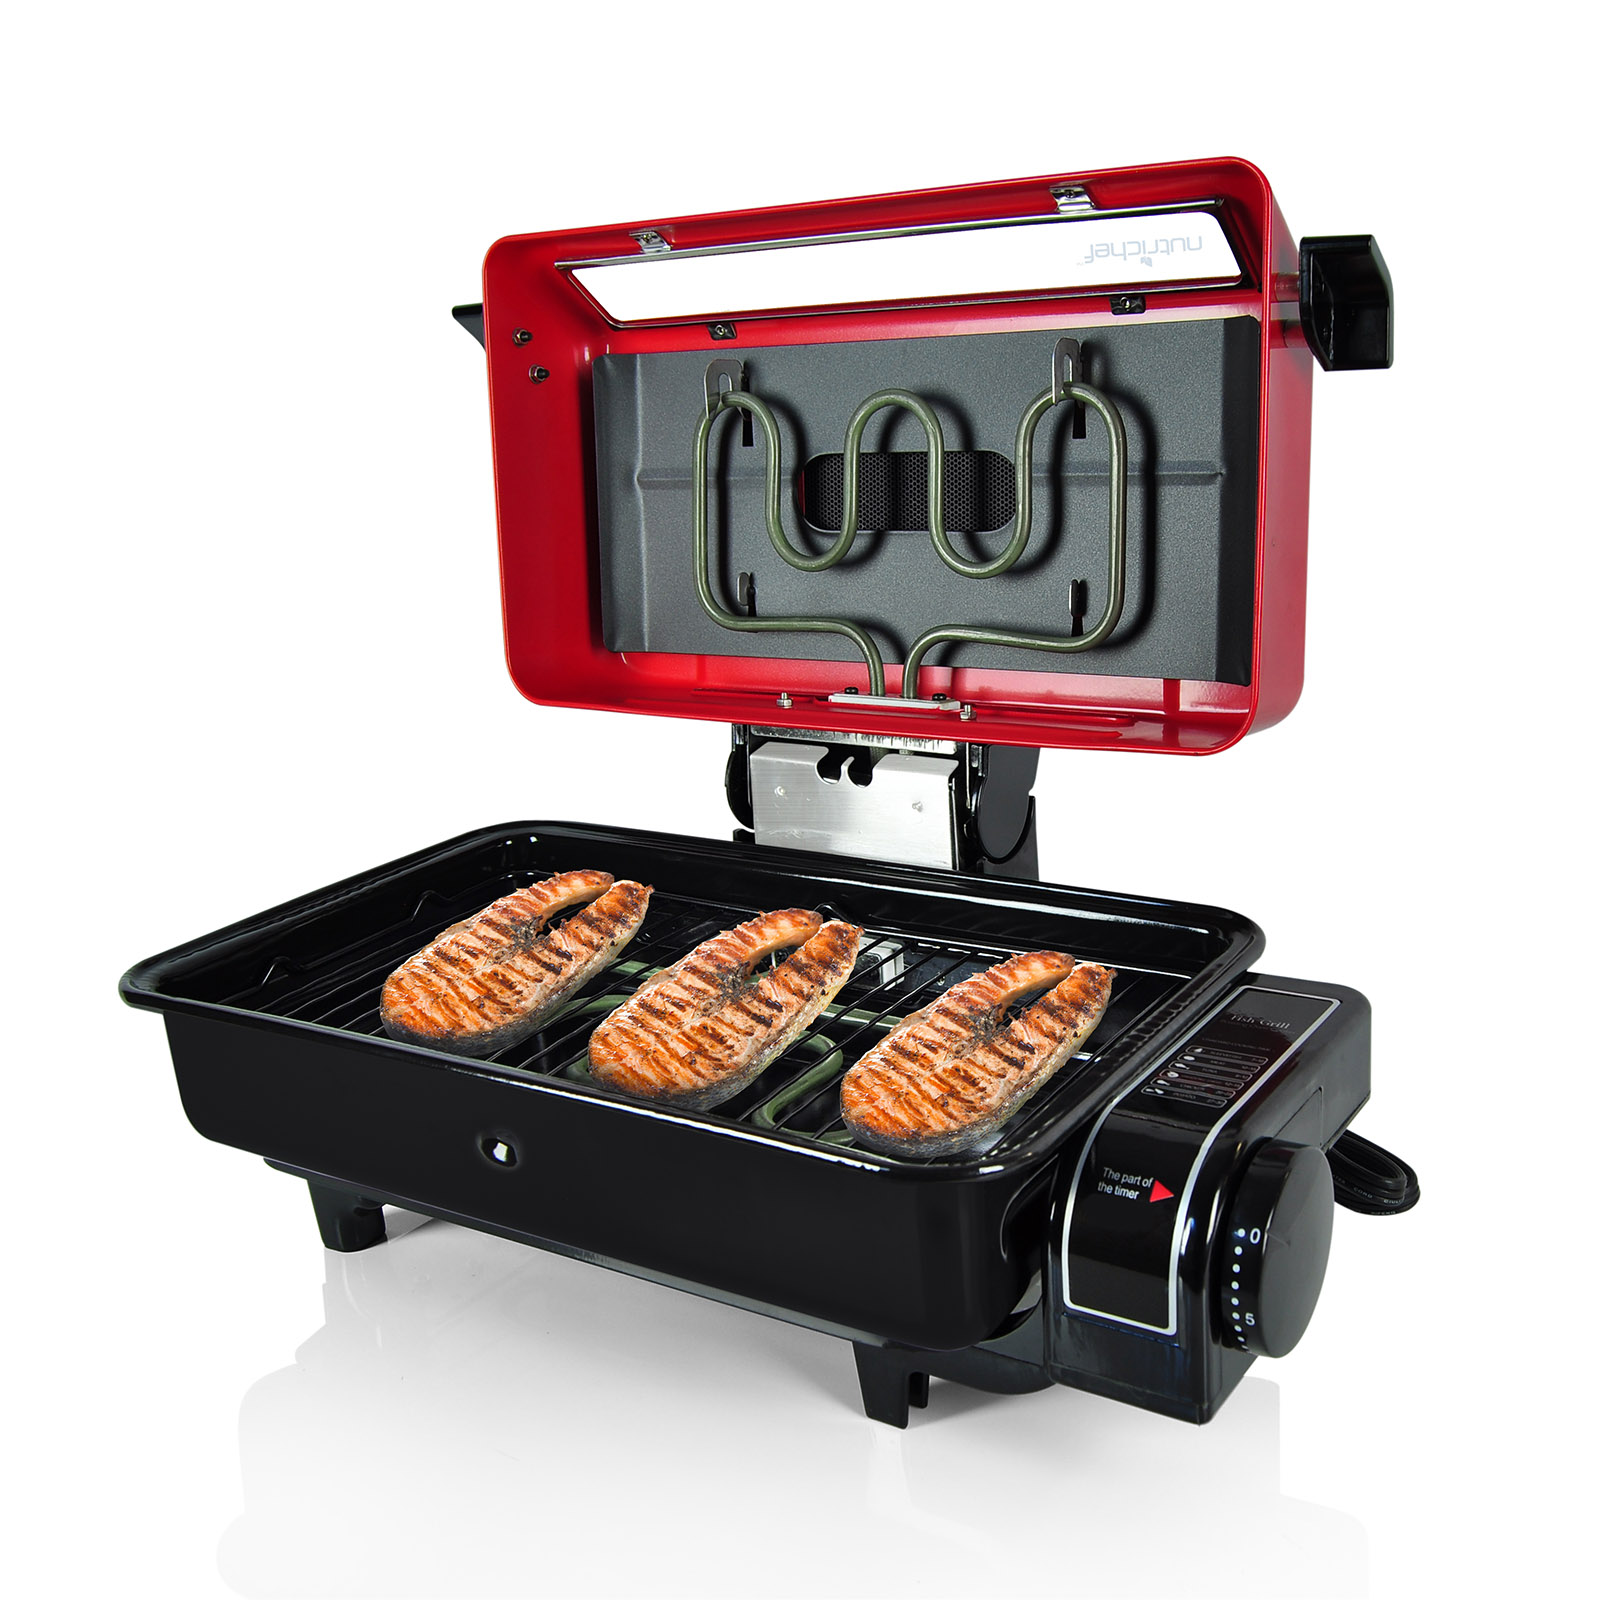 NutriChef Fish Grill, Roasting Oven Cooker